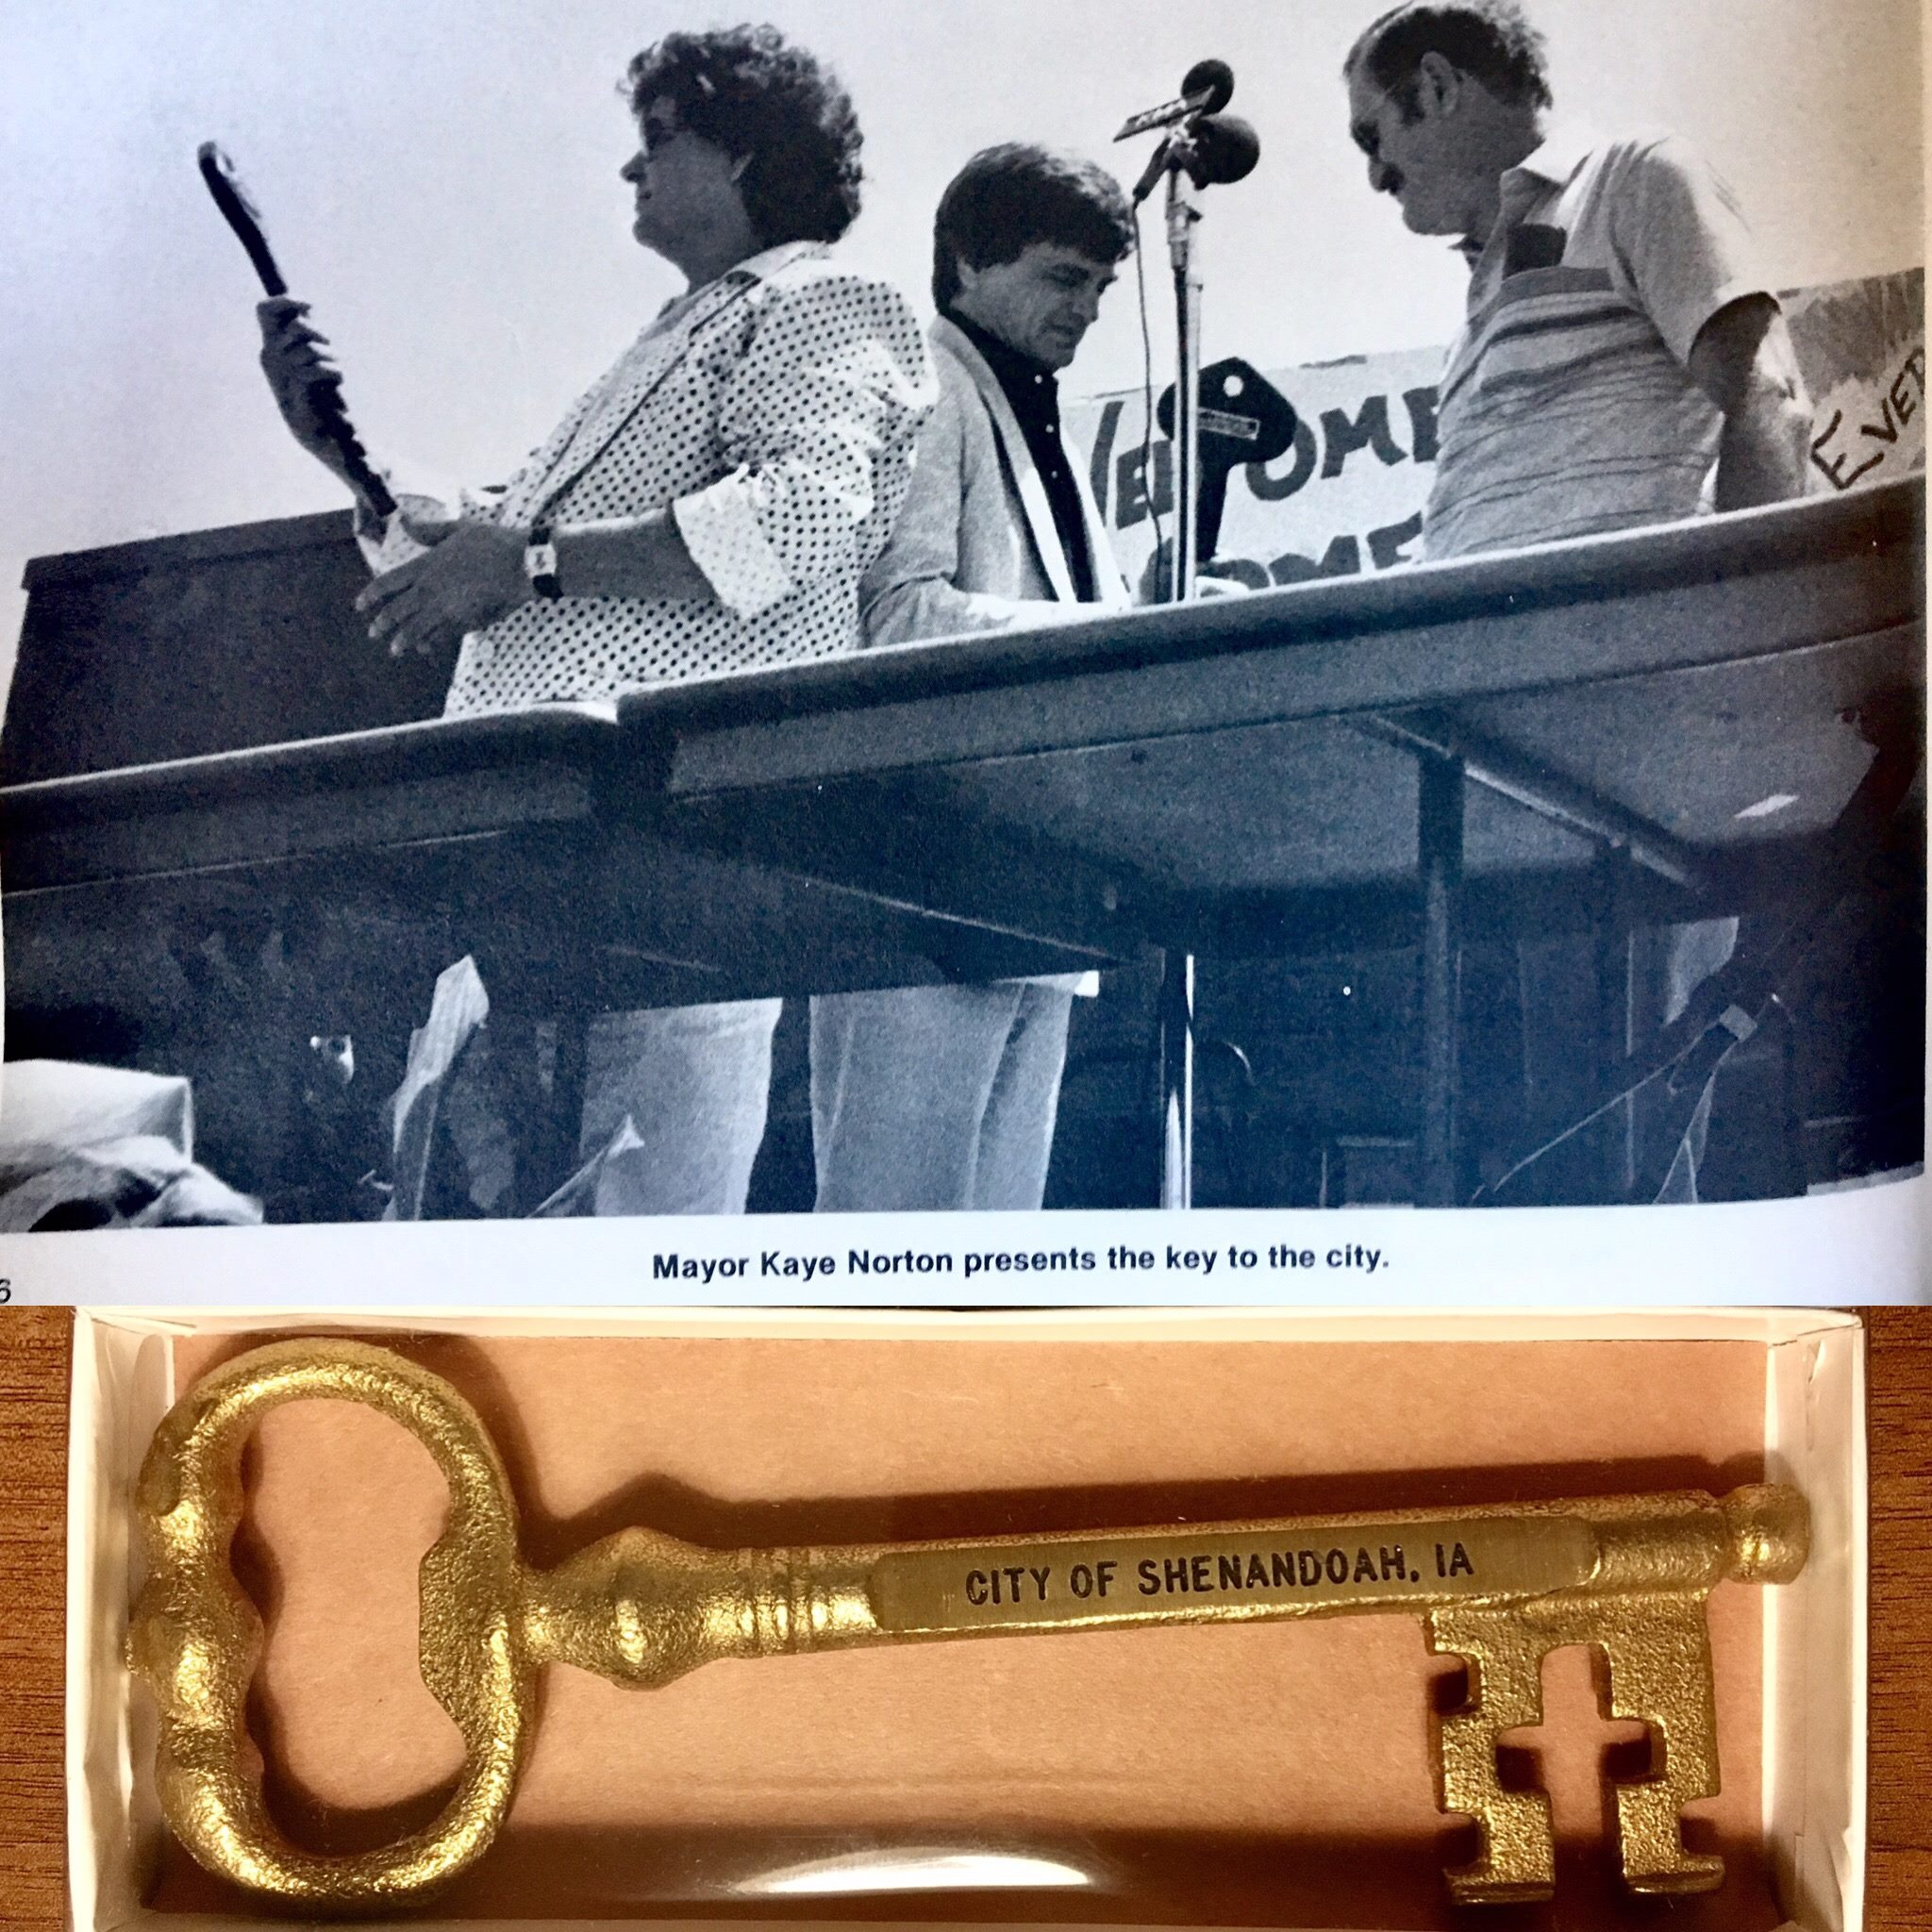 (top) Don and Phil getting the key to the city of Shenandoah presented to them by Mayor Kaye Norton in 1986 (bottom) The key that mayor Kaye Norton presented Zach and Dylan on September 23rd at the beginning of their performance in The Armory in 2017